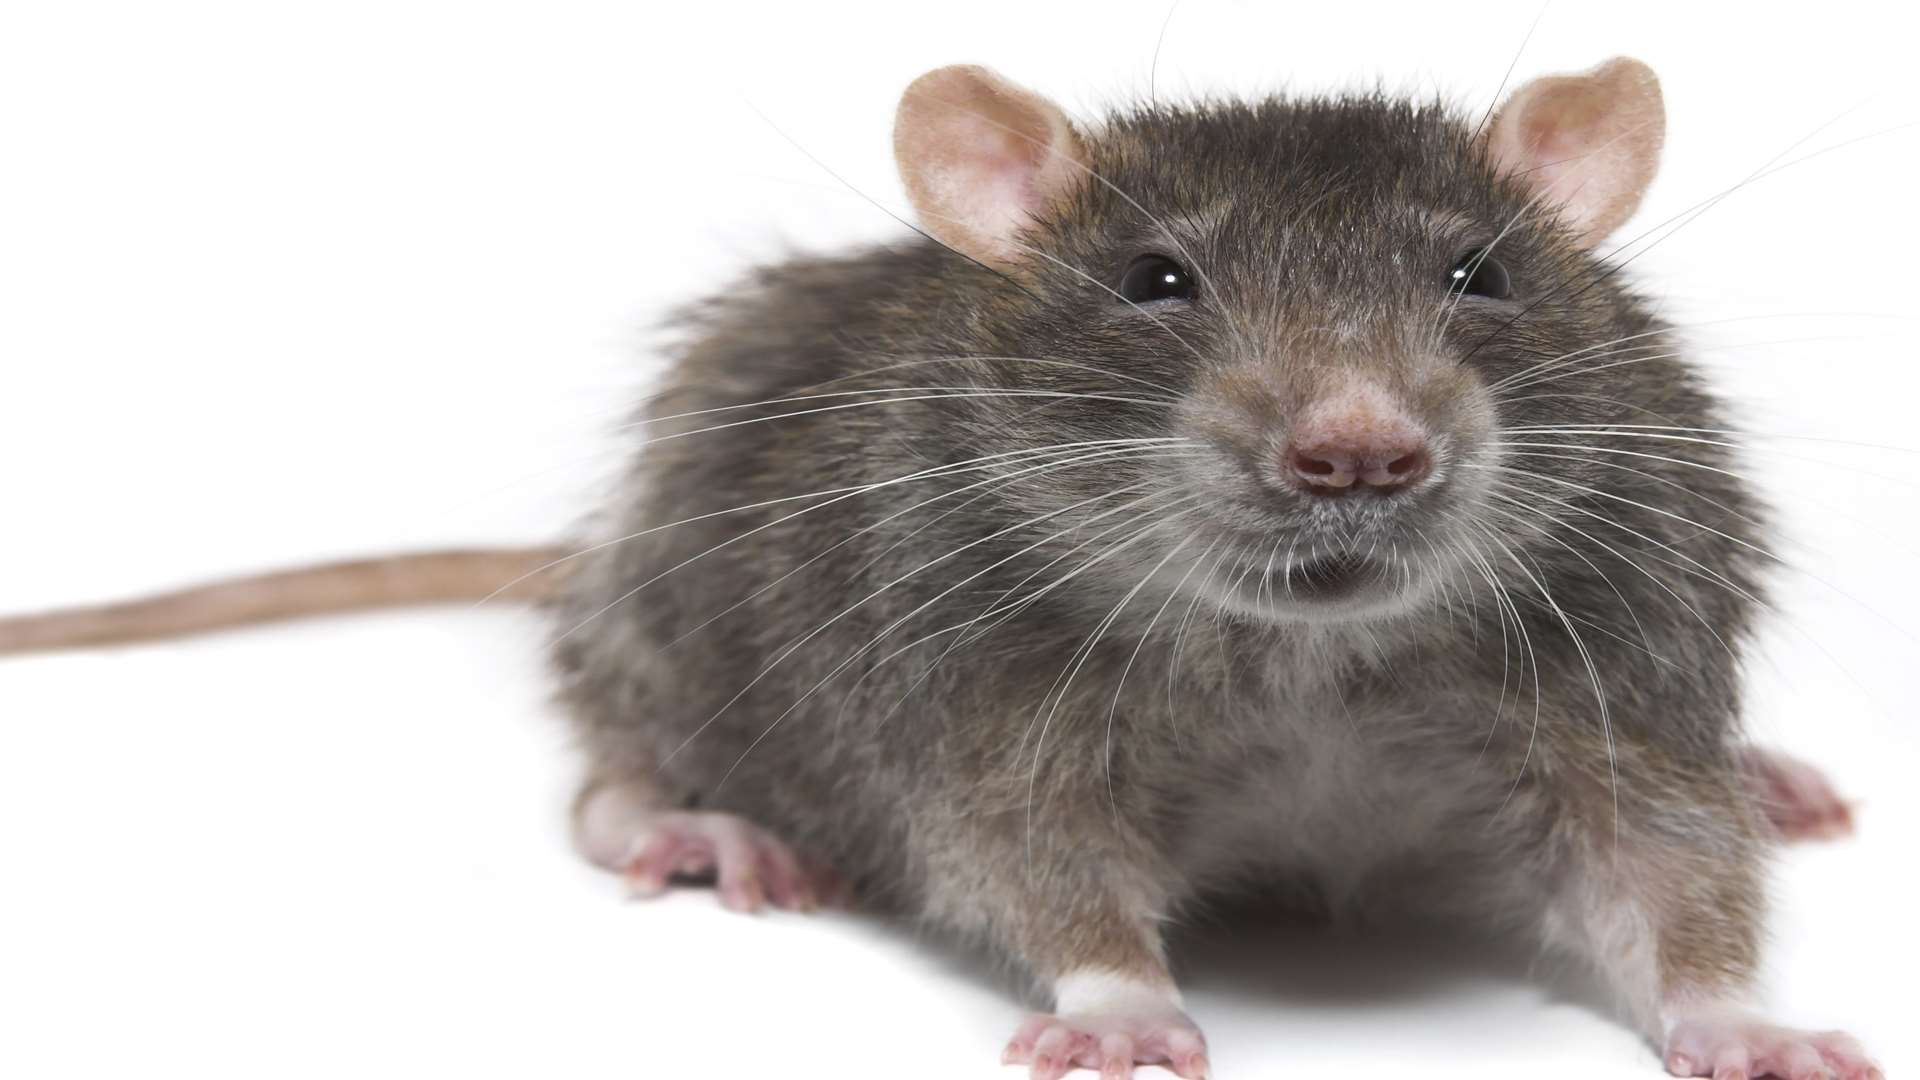 A rat was spotted in the cafe. Picture: Thinkstock